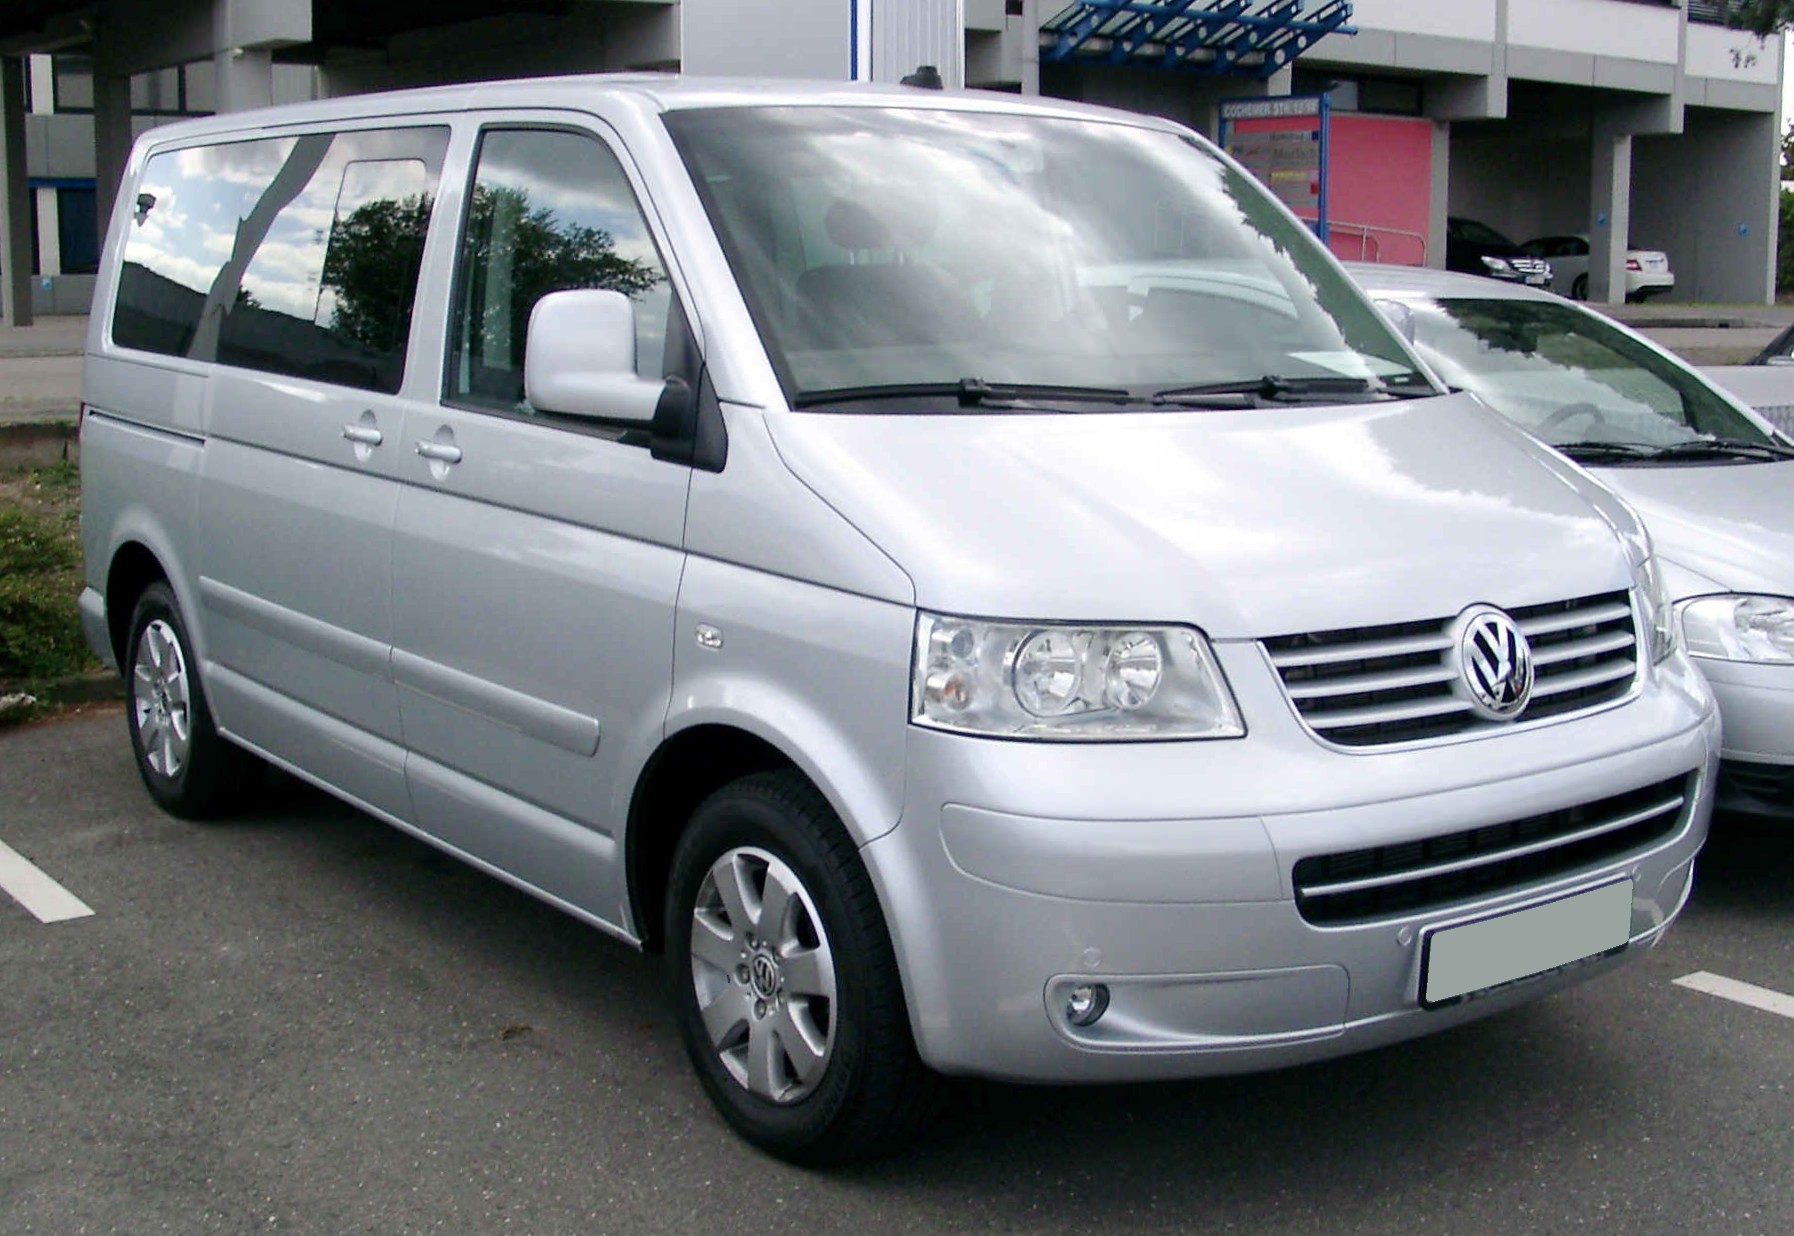 Volkswagen t5 photo - 1